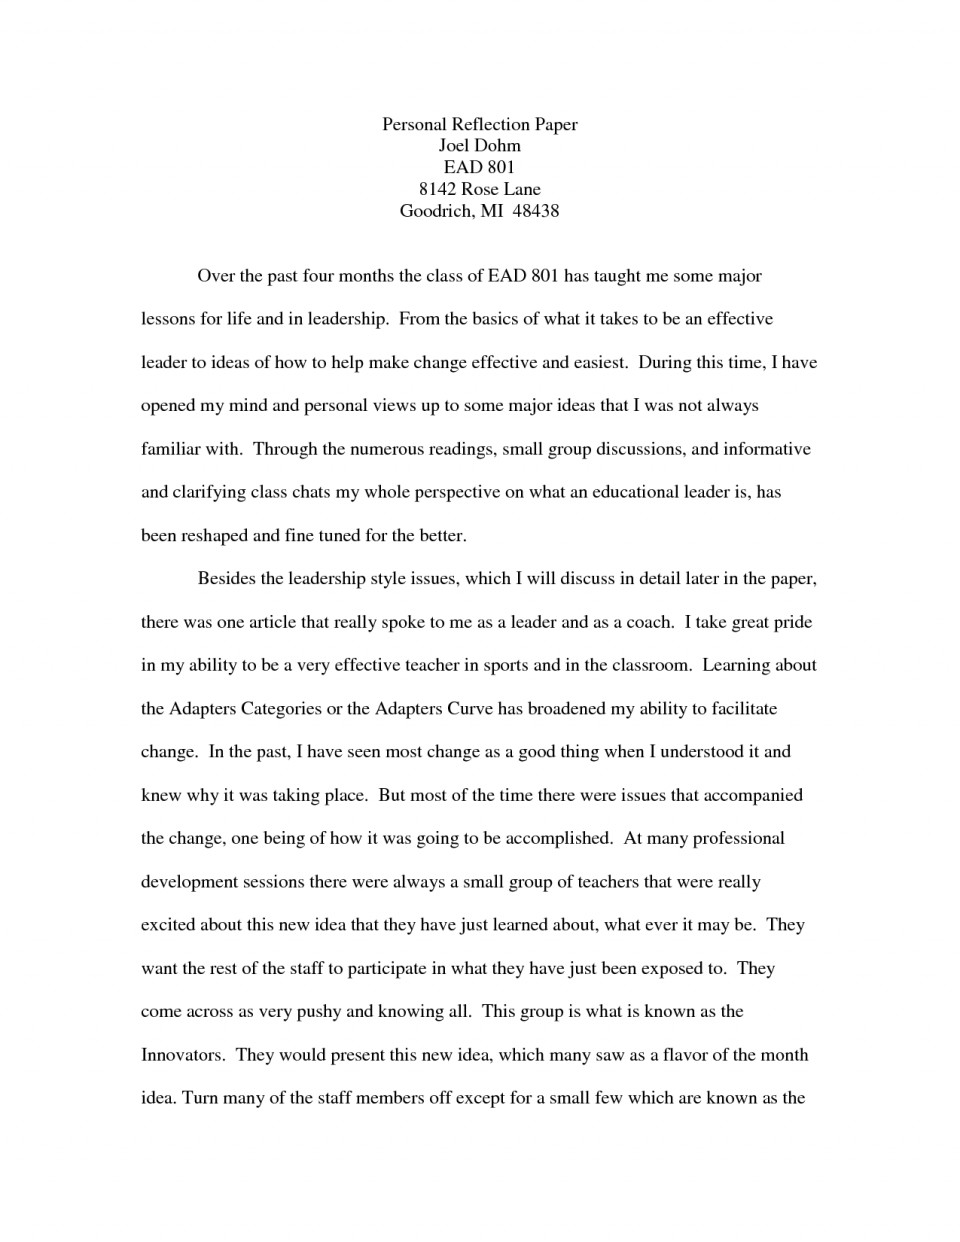 006 Personal Reflection Essay Examples Paper Example Ggnje Of Reflective Essays On Group Work For English